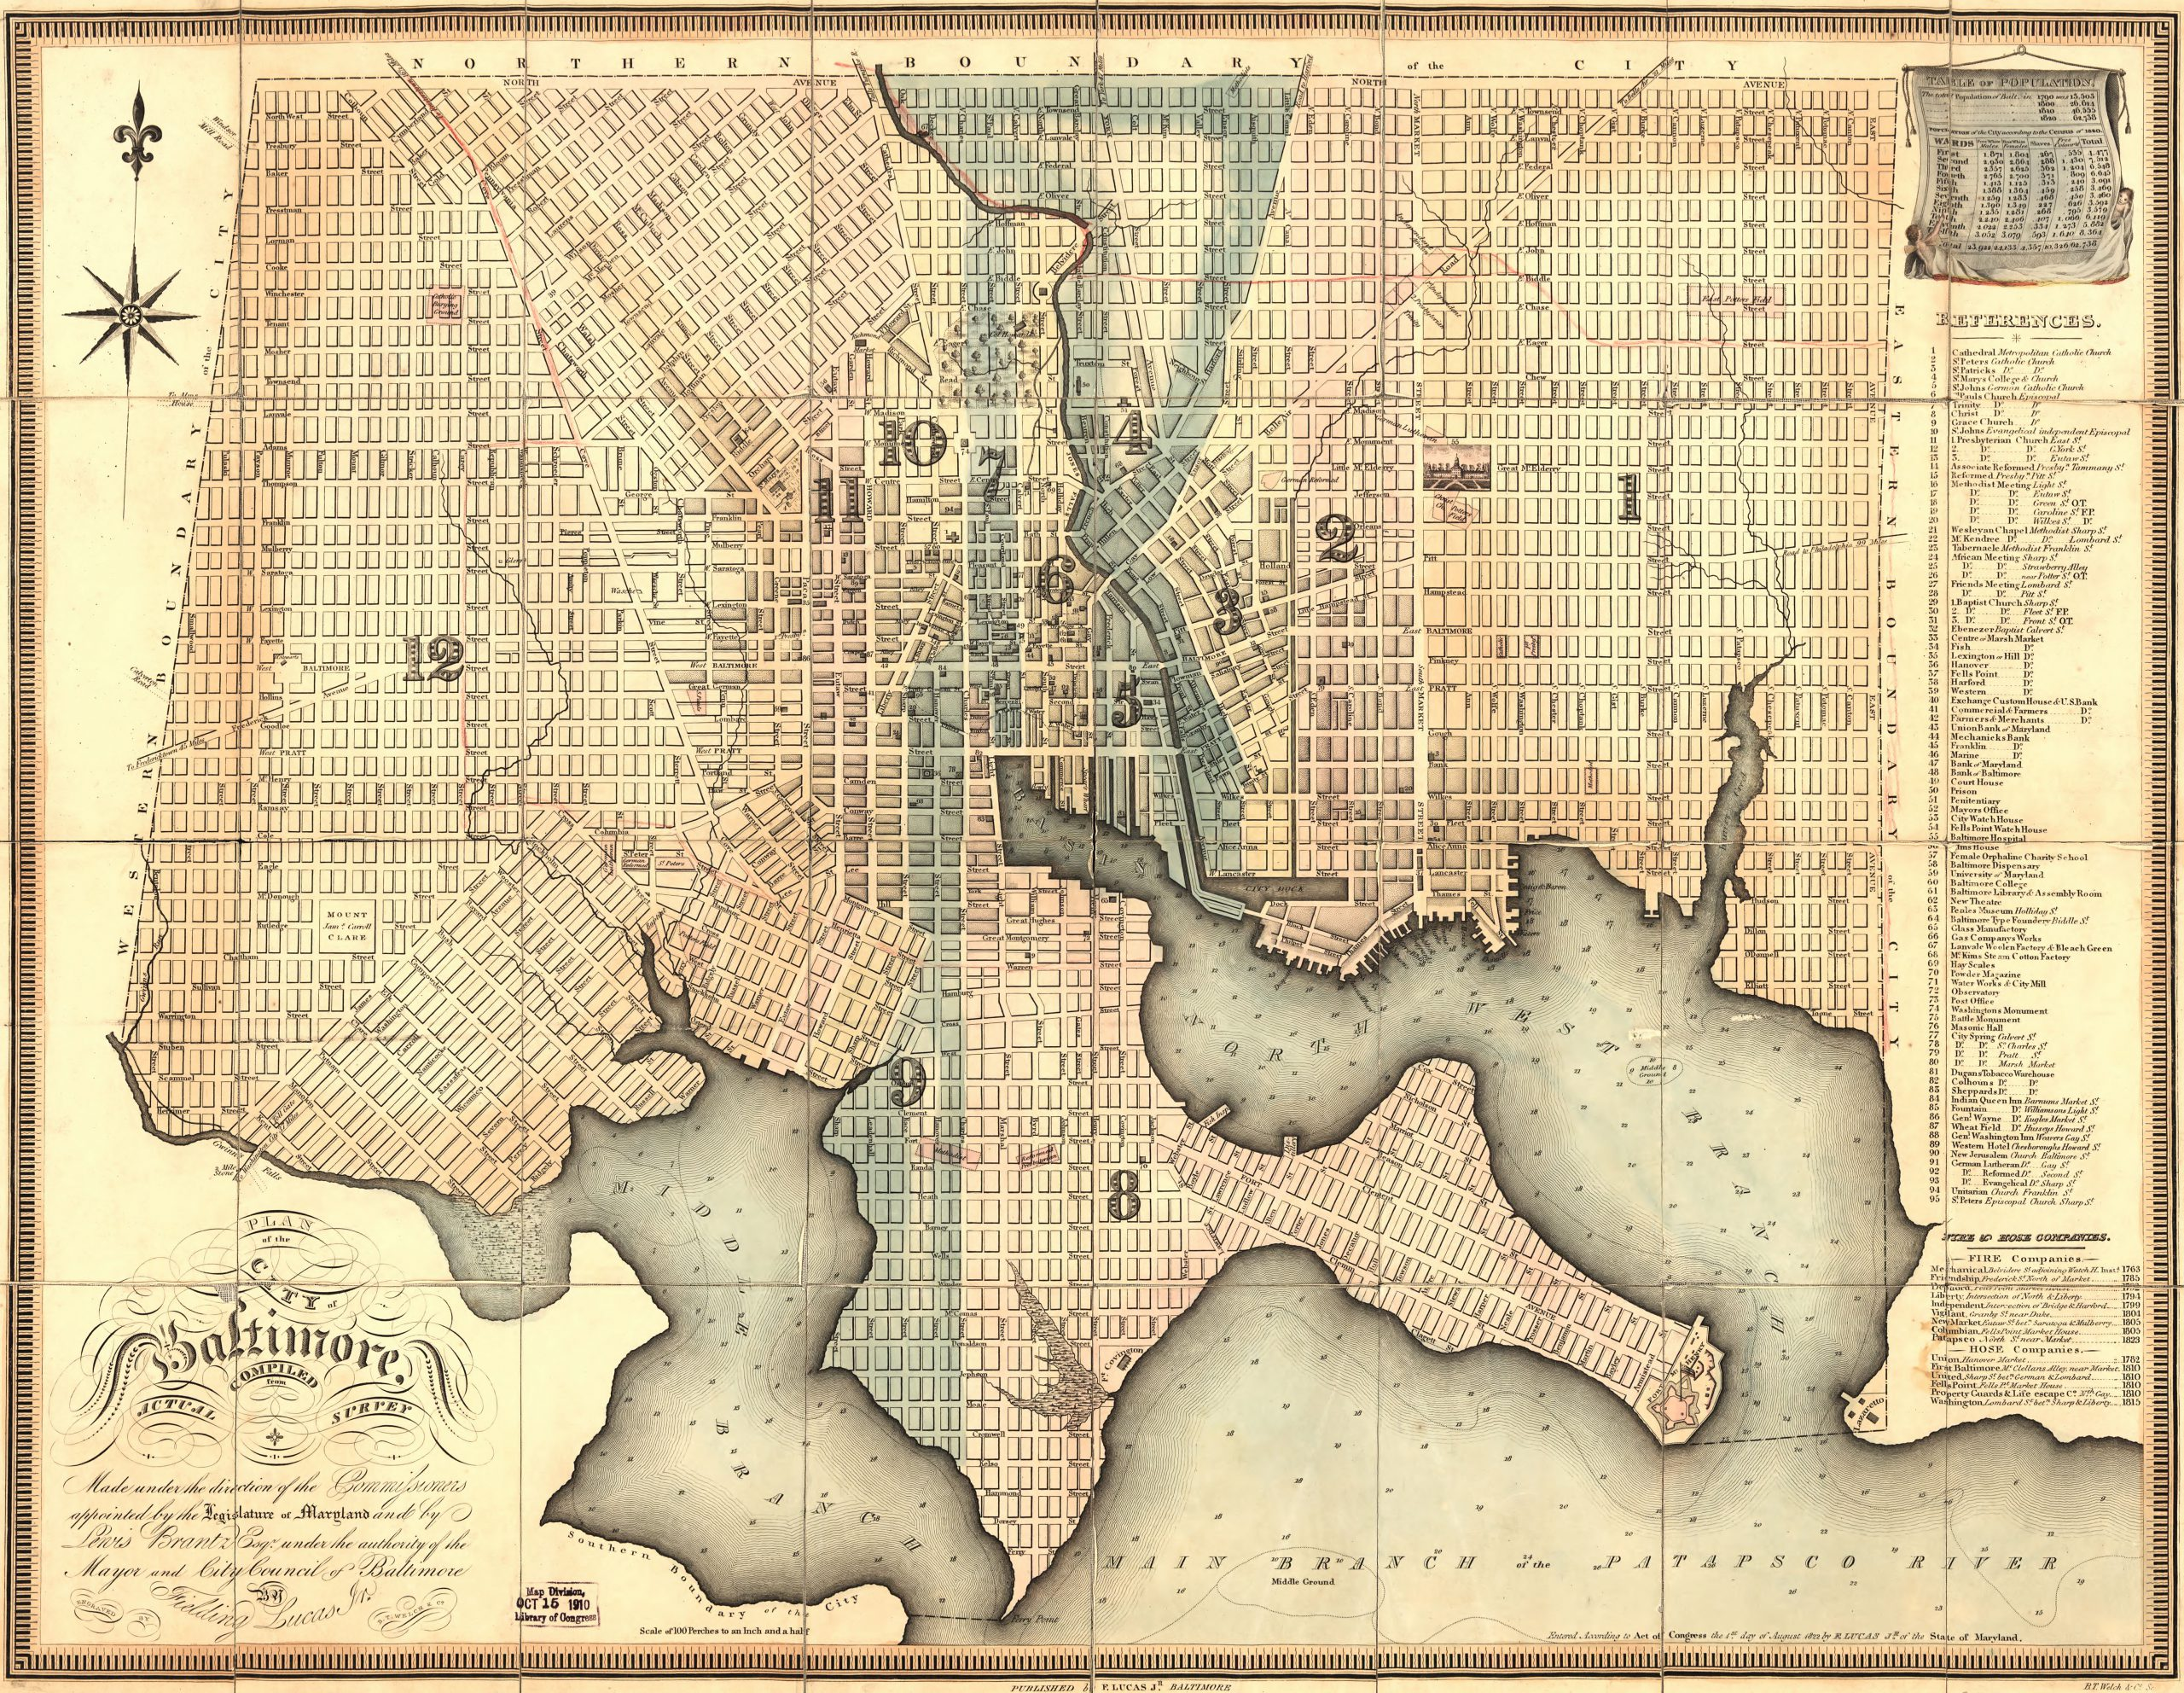 1822 Map of Baltimore